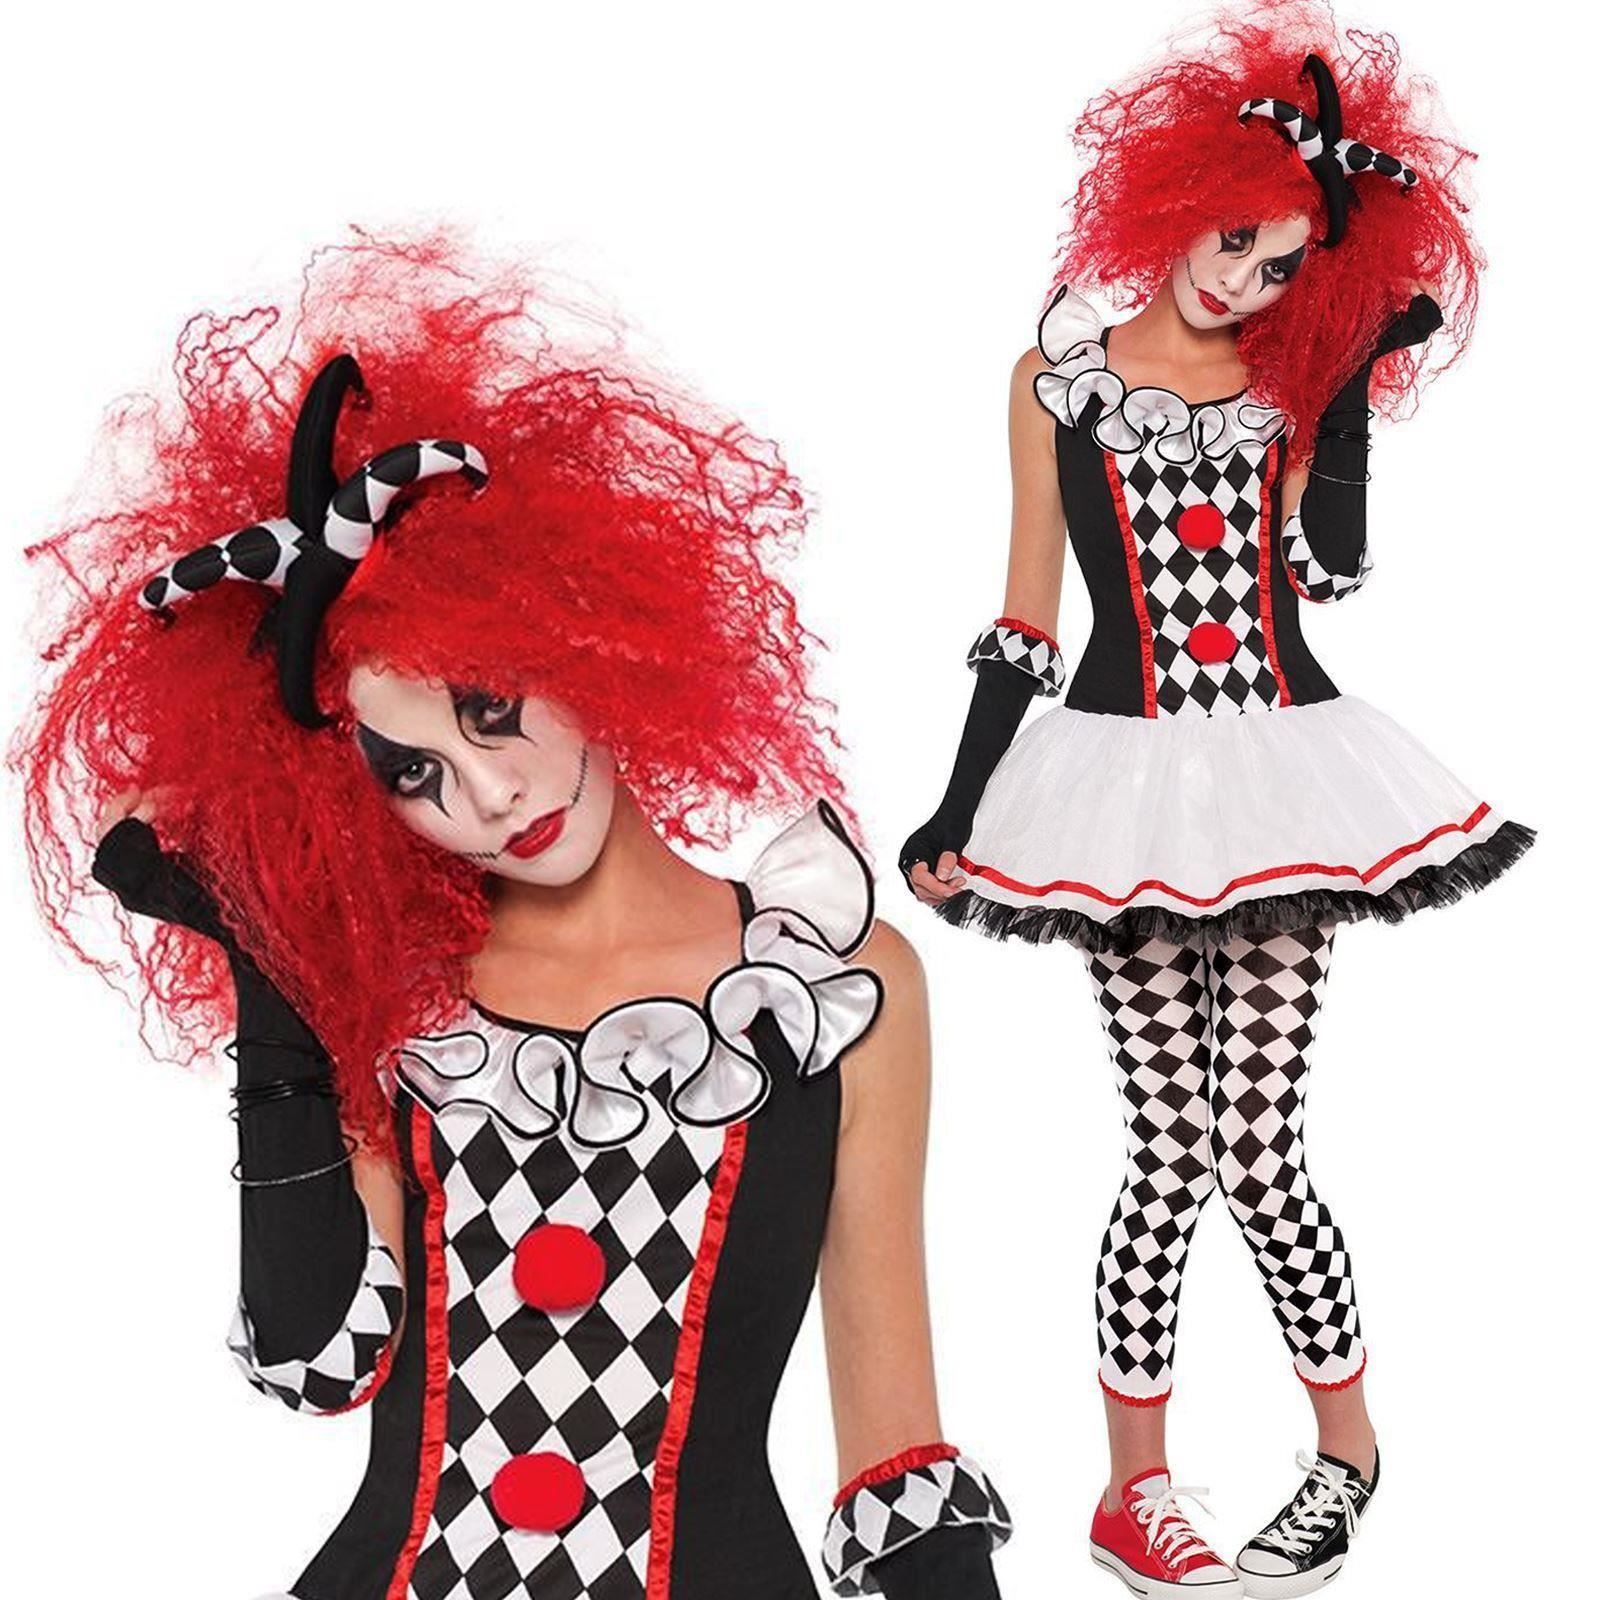 Killer Clown Halloween Costumes For Girls.Clown Costume Ladies Crazy Jester Girl Adult Costume Sc 1 St Pure